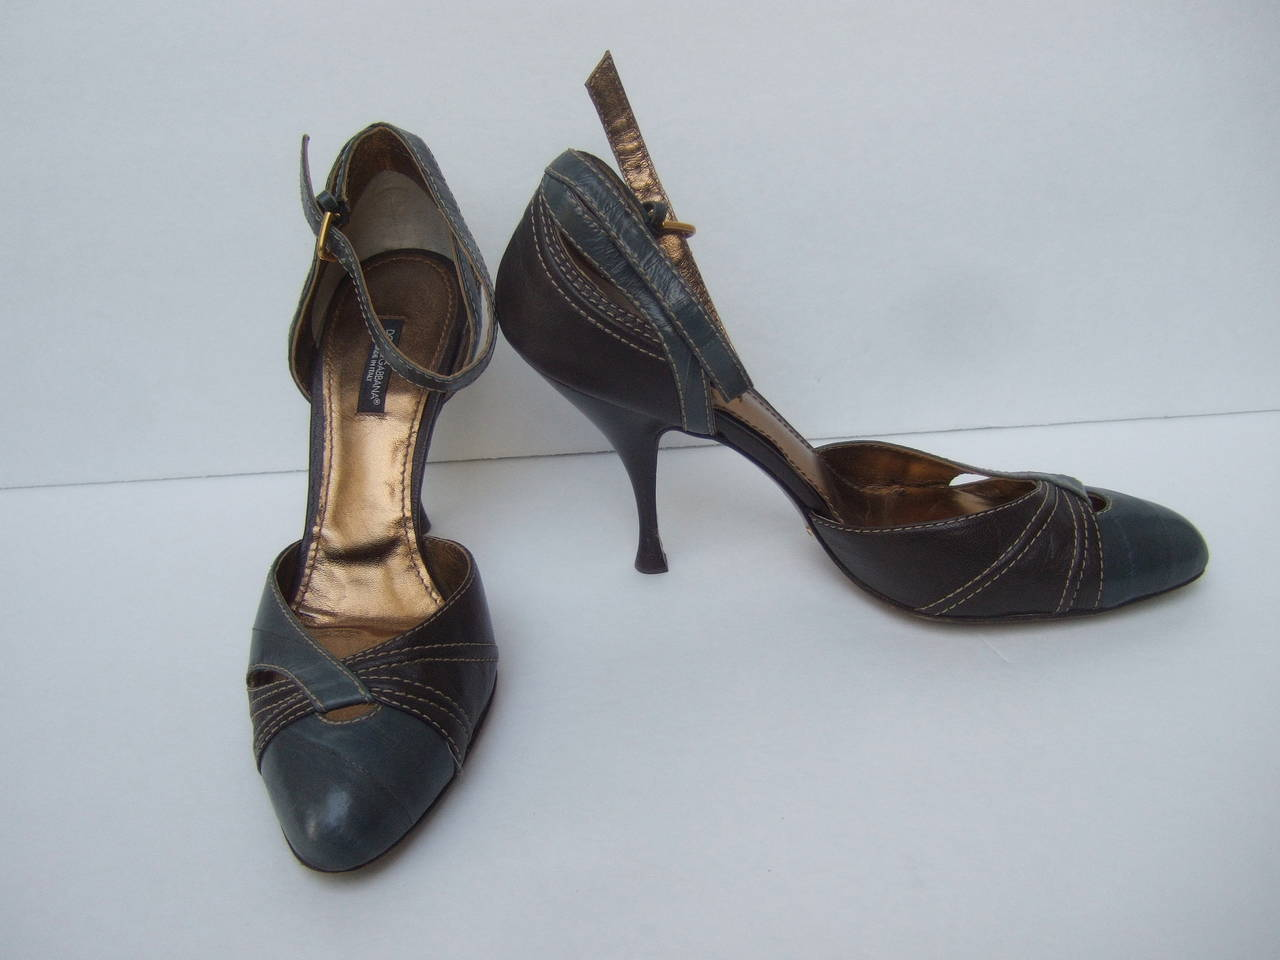 Dolce & Gabbana Gray & Brown Ankle Strap Shoes Size 39.5 Made in Italy In Good Condition For Sale In Santa Barbara, CA